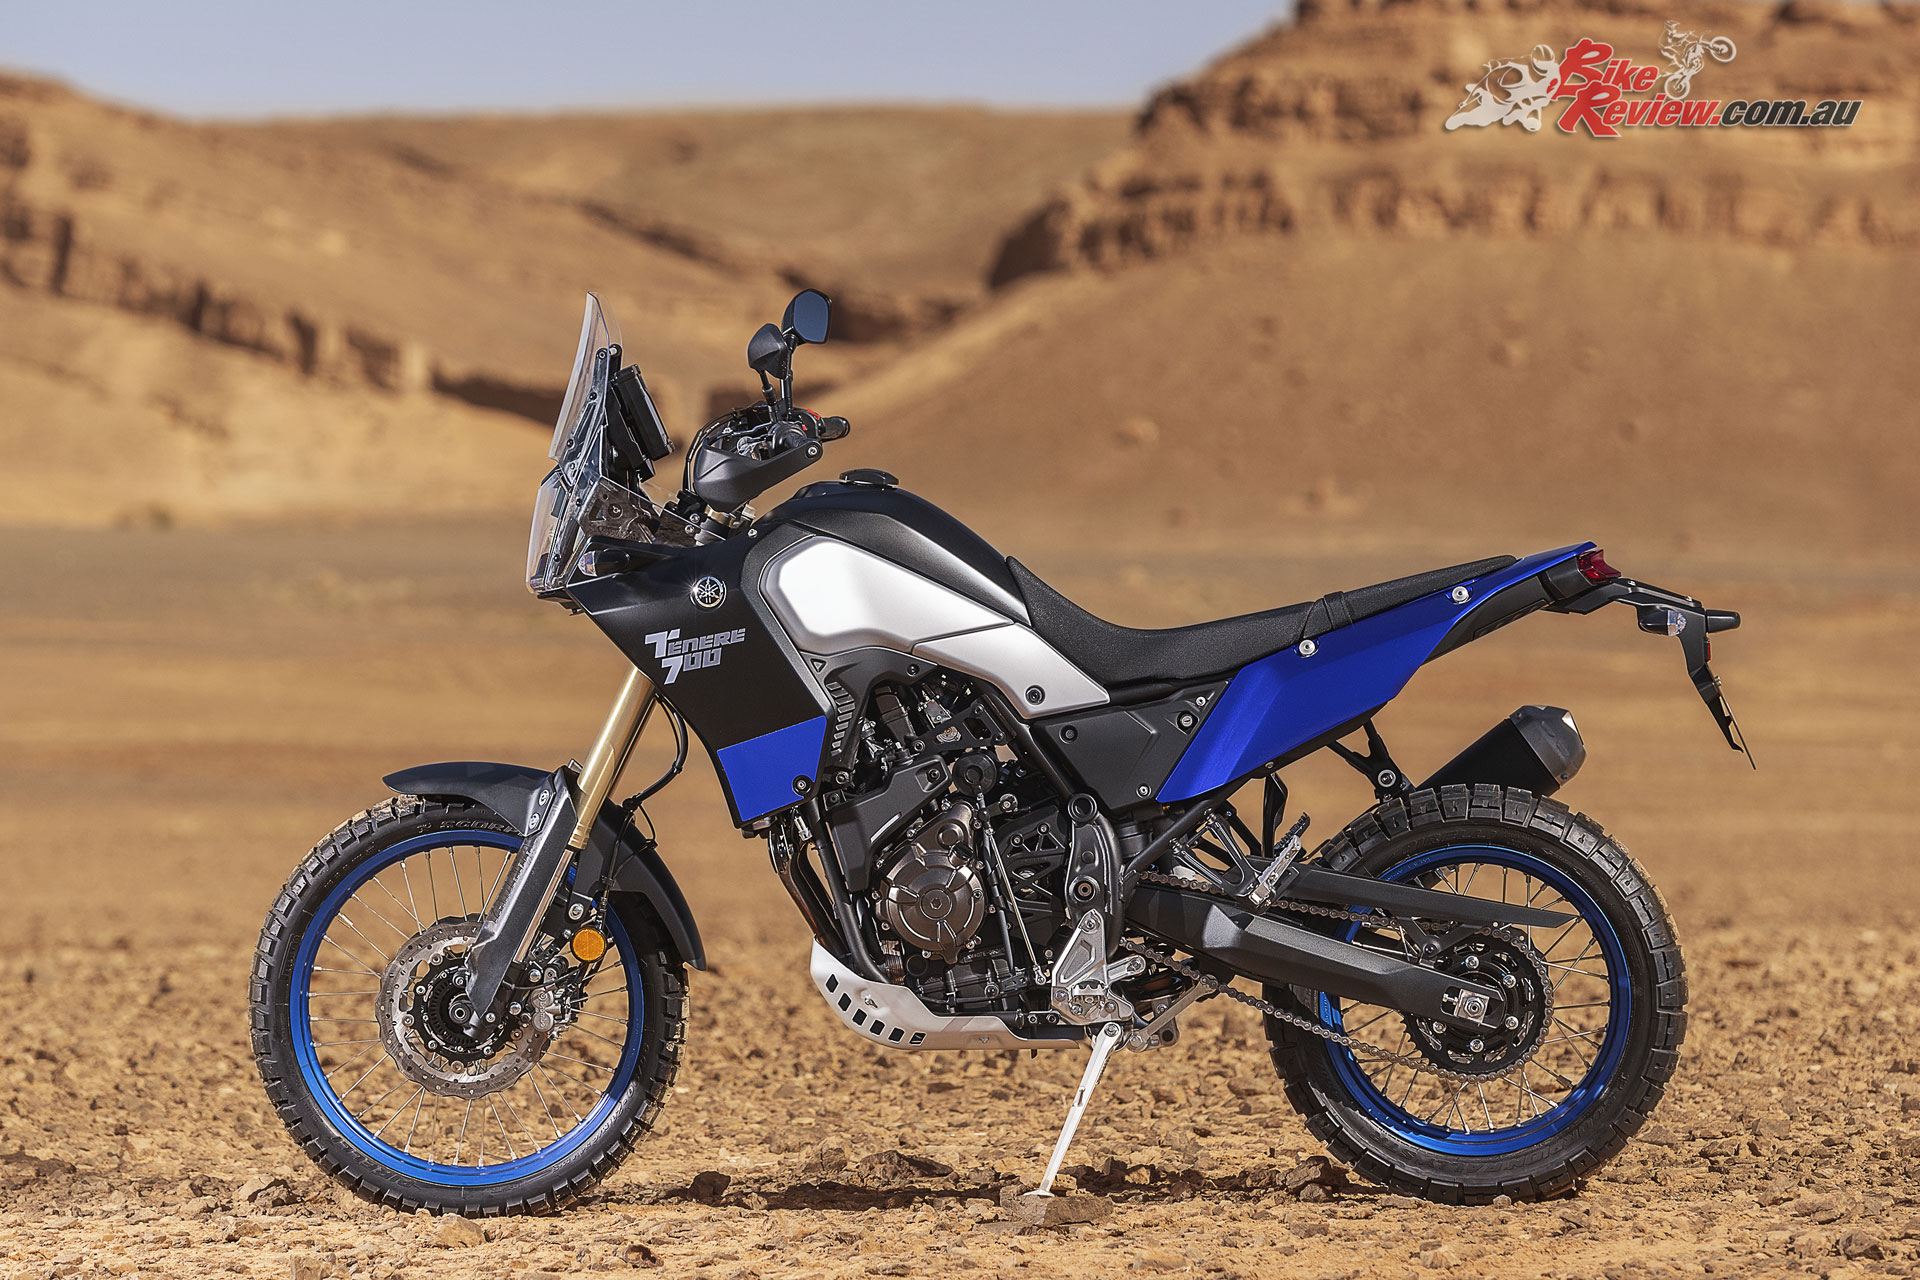 Yamaha's new for 2019 Tenere 700 is inspired by the original XT500